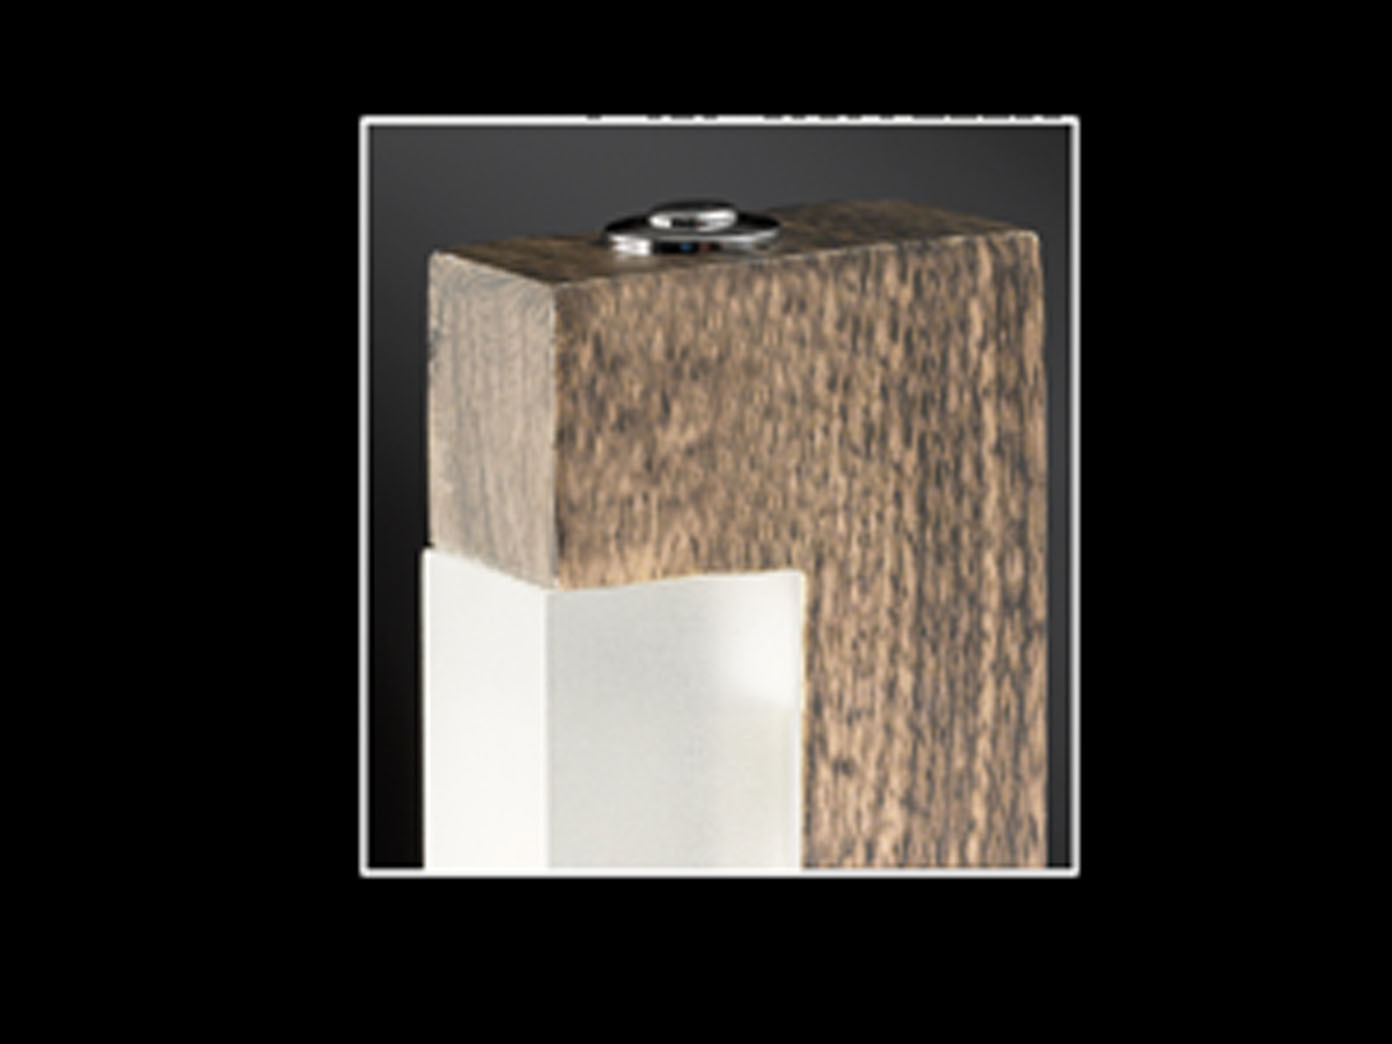 Stehlampe Design Dimmbar Honsel Design Led Stehlampe Dimmbar Stick Holz